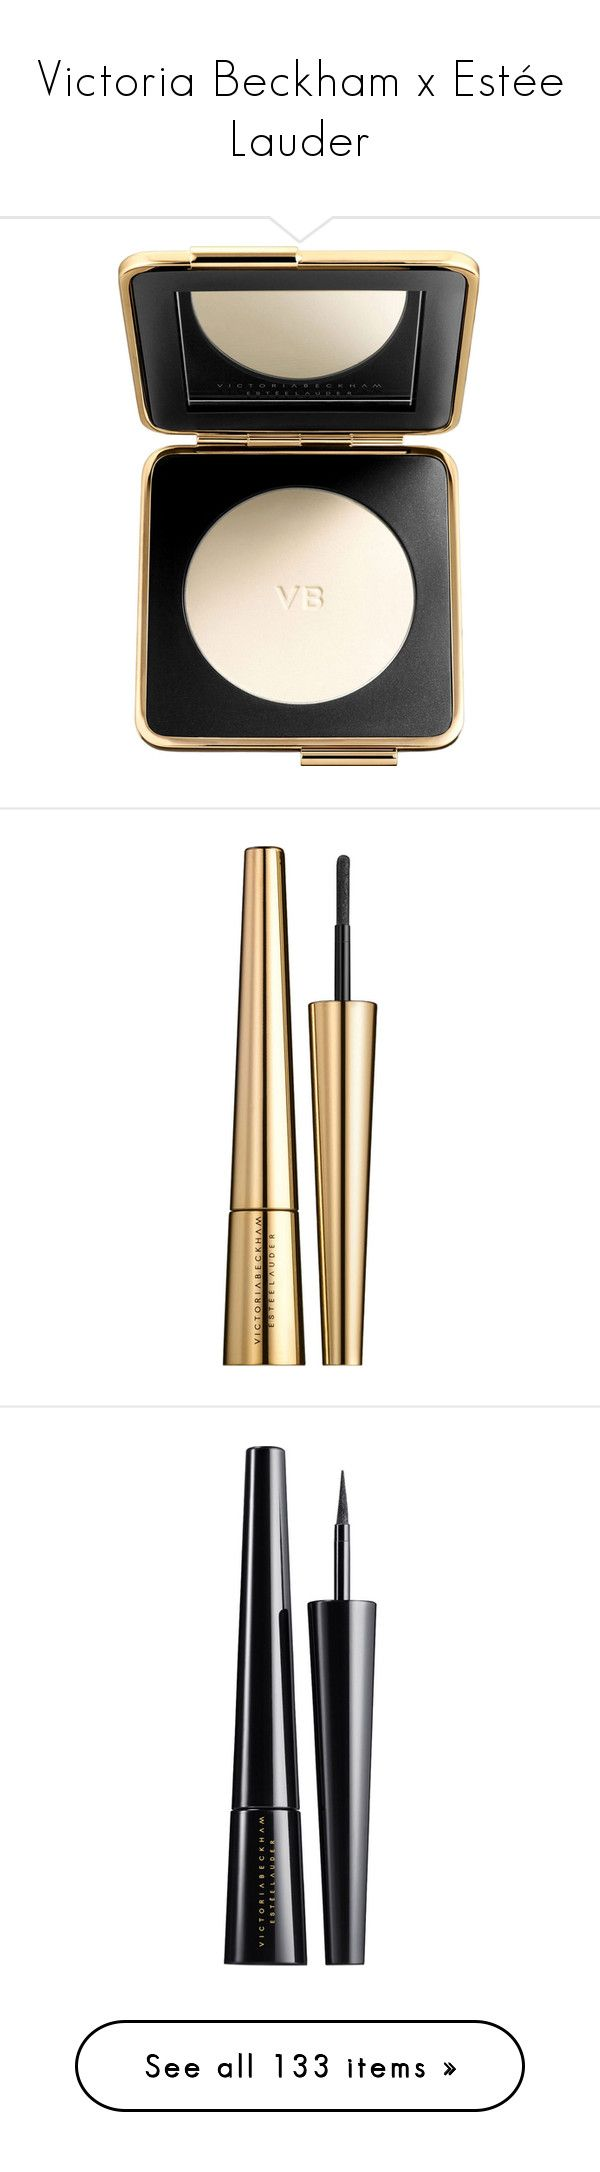 """""""Victoria Beckham x Estée Lauder"""" by angelbrubisc ❤ liked on Polyvore featuring beauty products, makeup, face makeup, estee lauder makeup, estée lauder, estee lauder cosmetics, eye makeup, beauty, loose powder makeup and estee lauder eye makeup"""